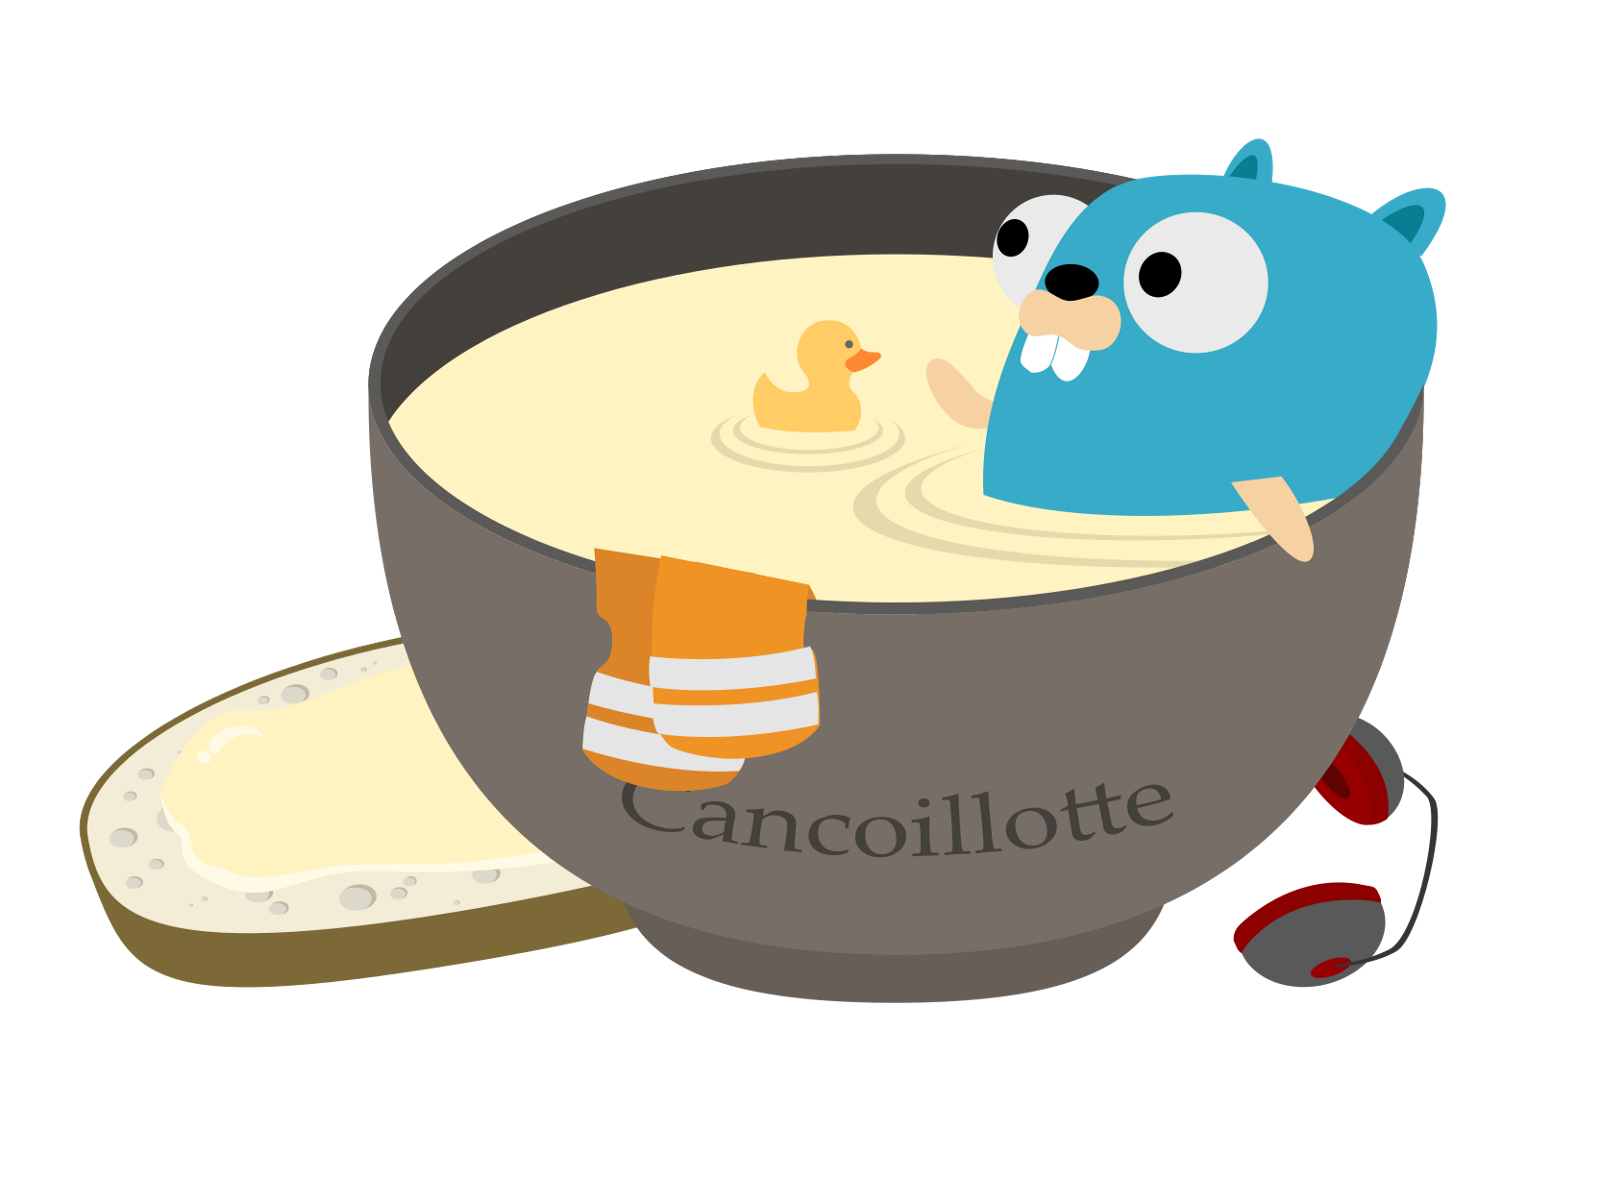 Excited clipart thrilled. Traefik cancoillotte is here